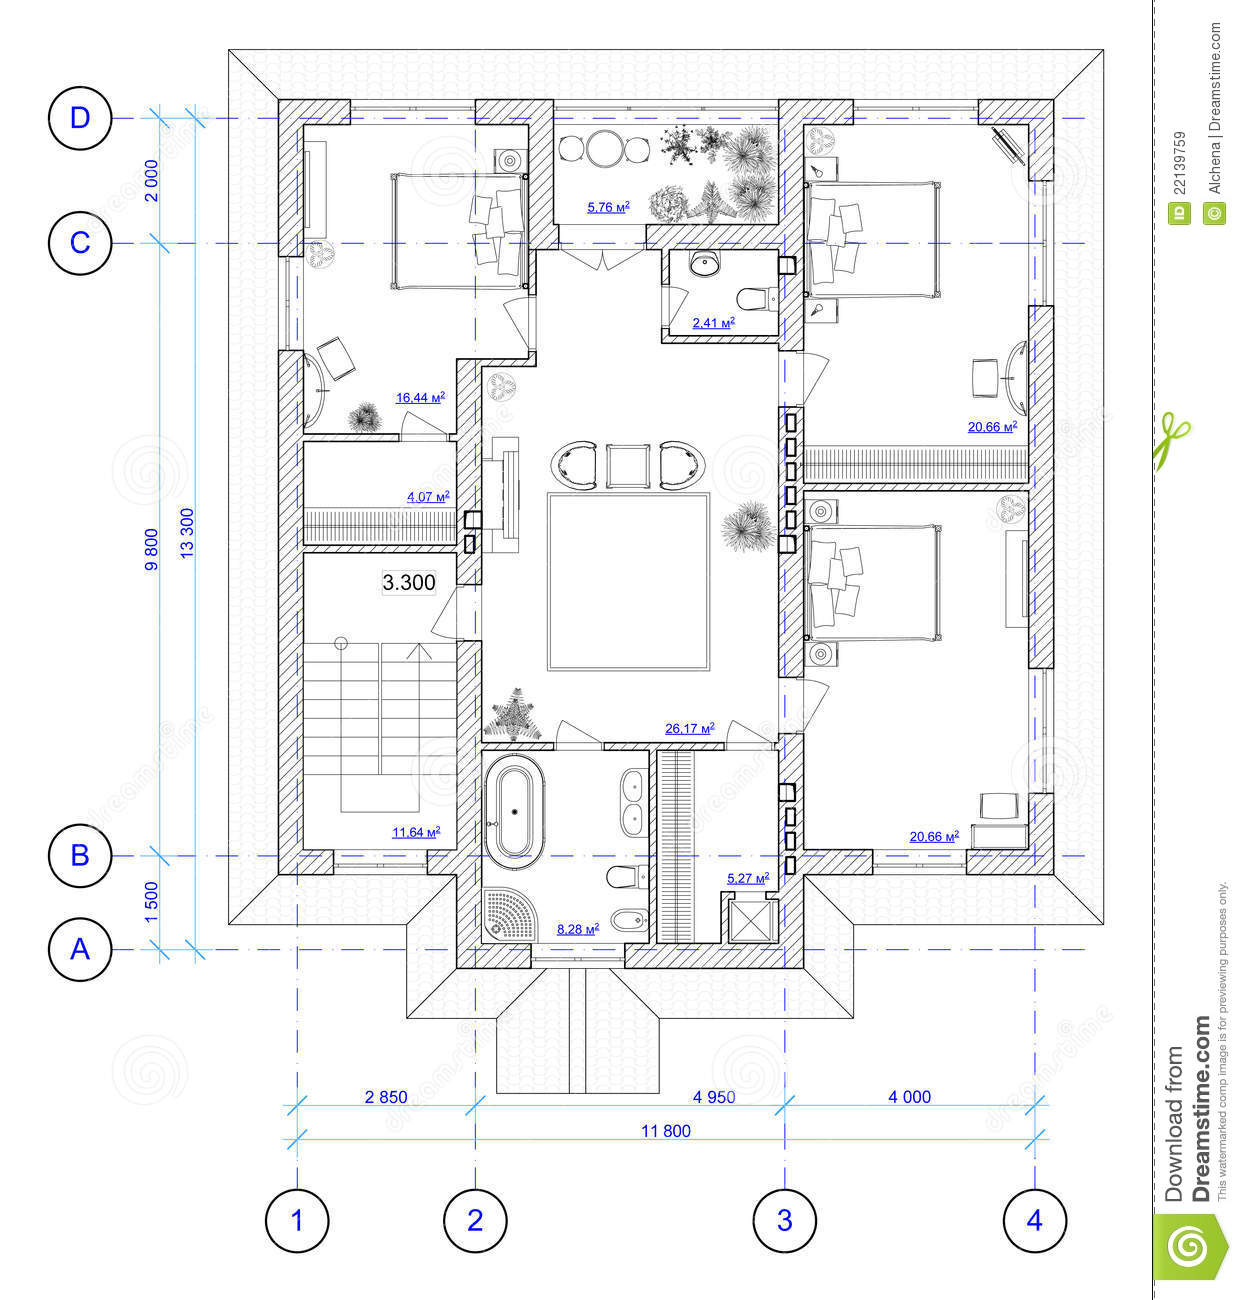 Architectural Plan Of 2 Floor Of House Royalty Free Stock